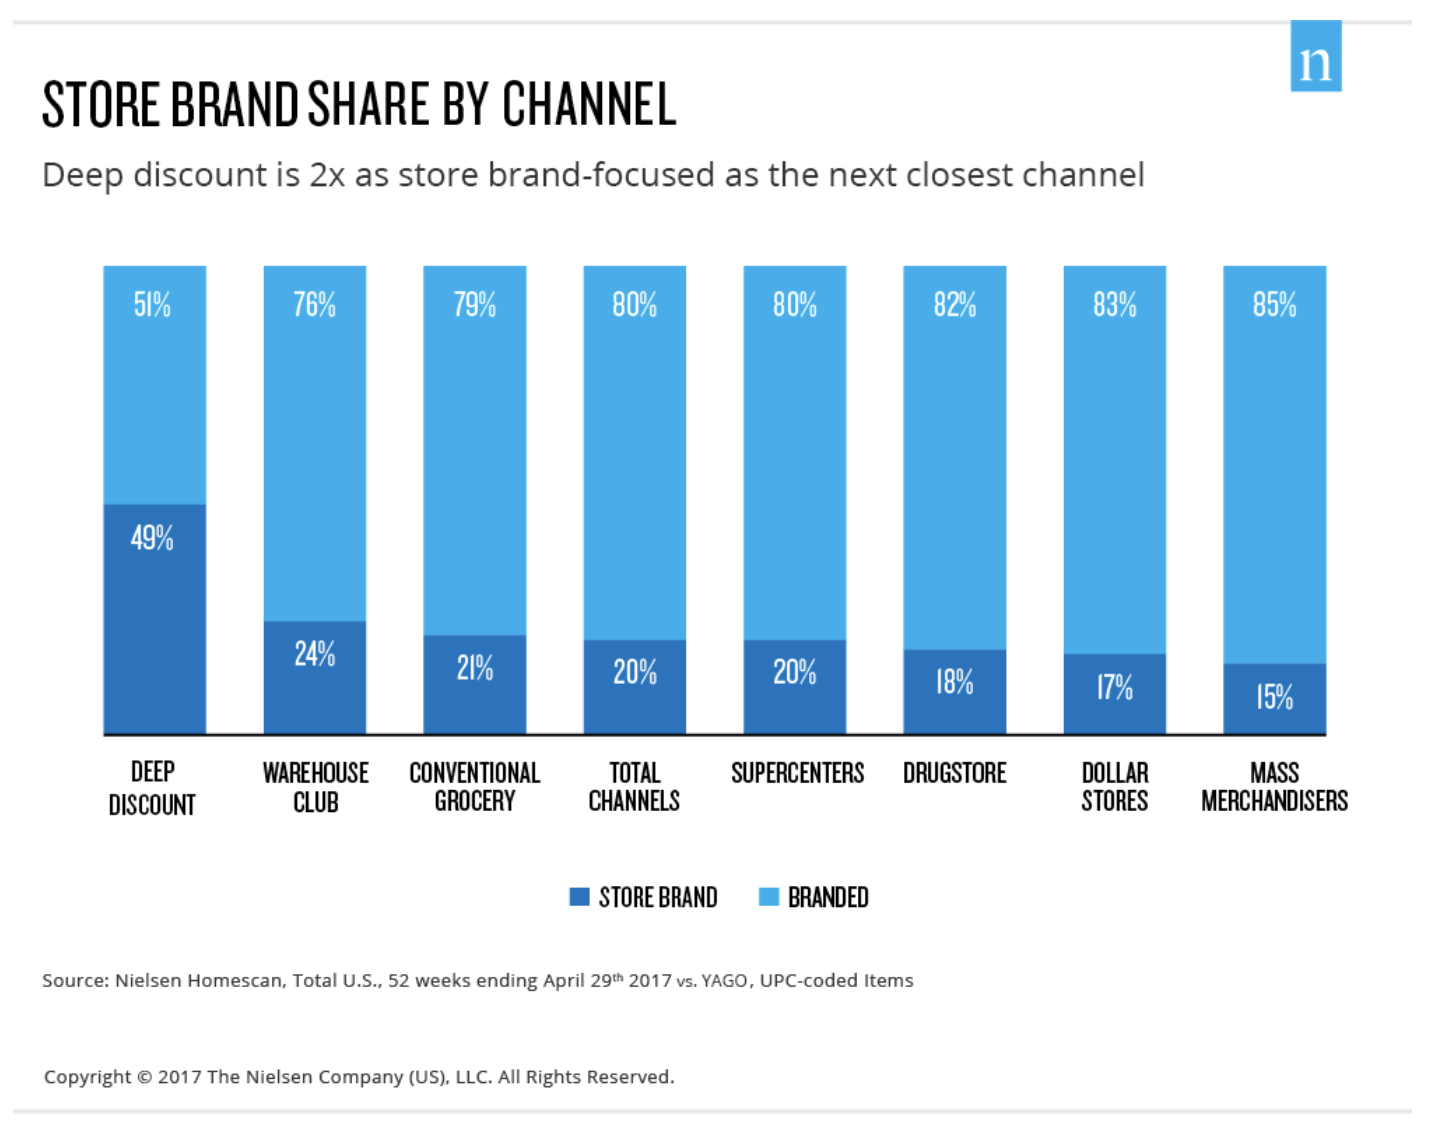 Store Brand Share by Channel, courtesy of The Nielson Company